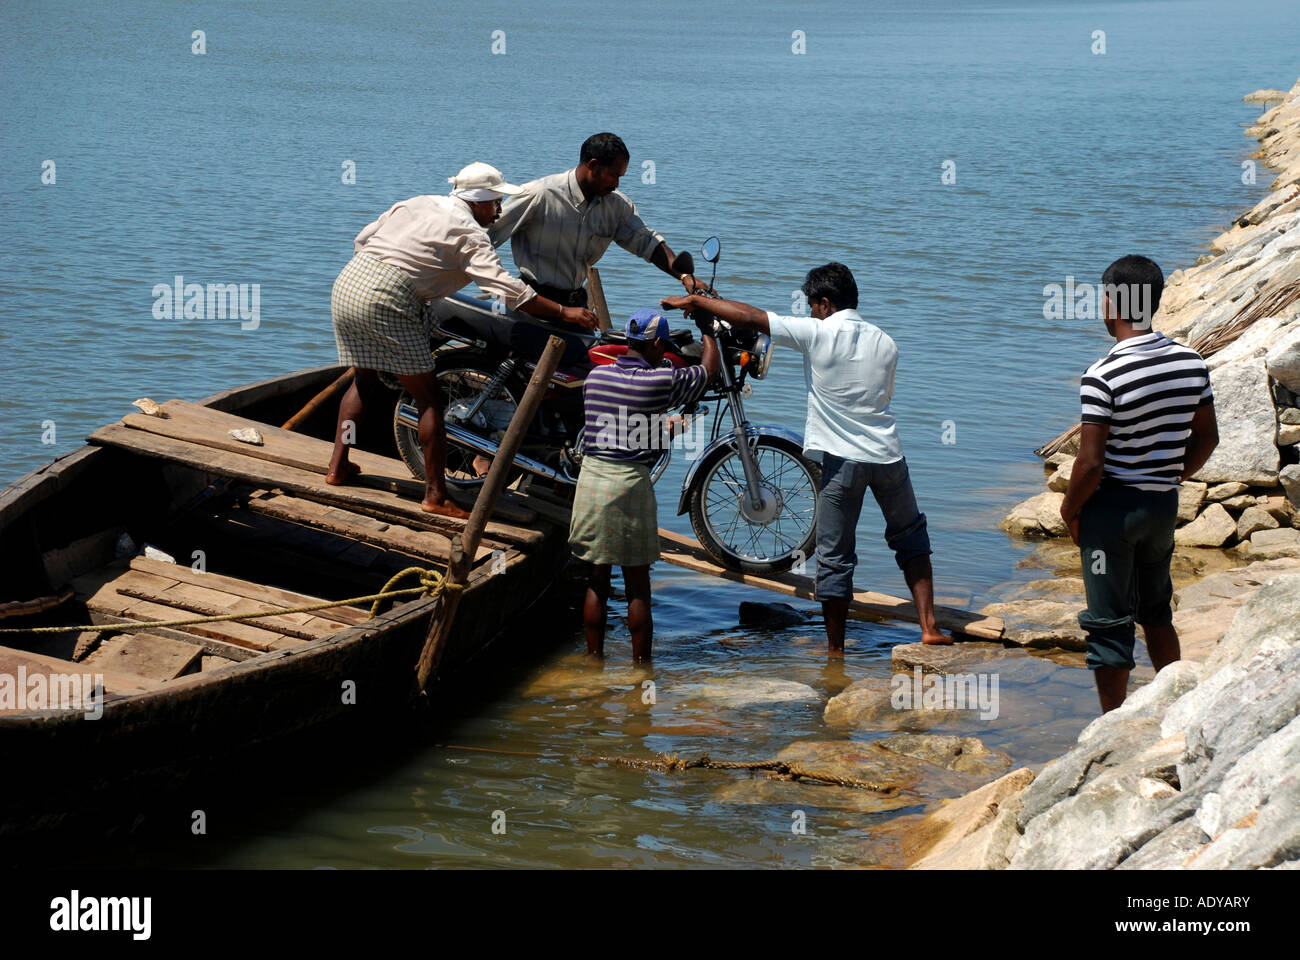 rowing boat service in kerala backwhater - Stock Image